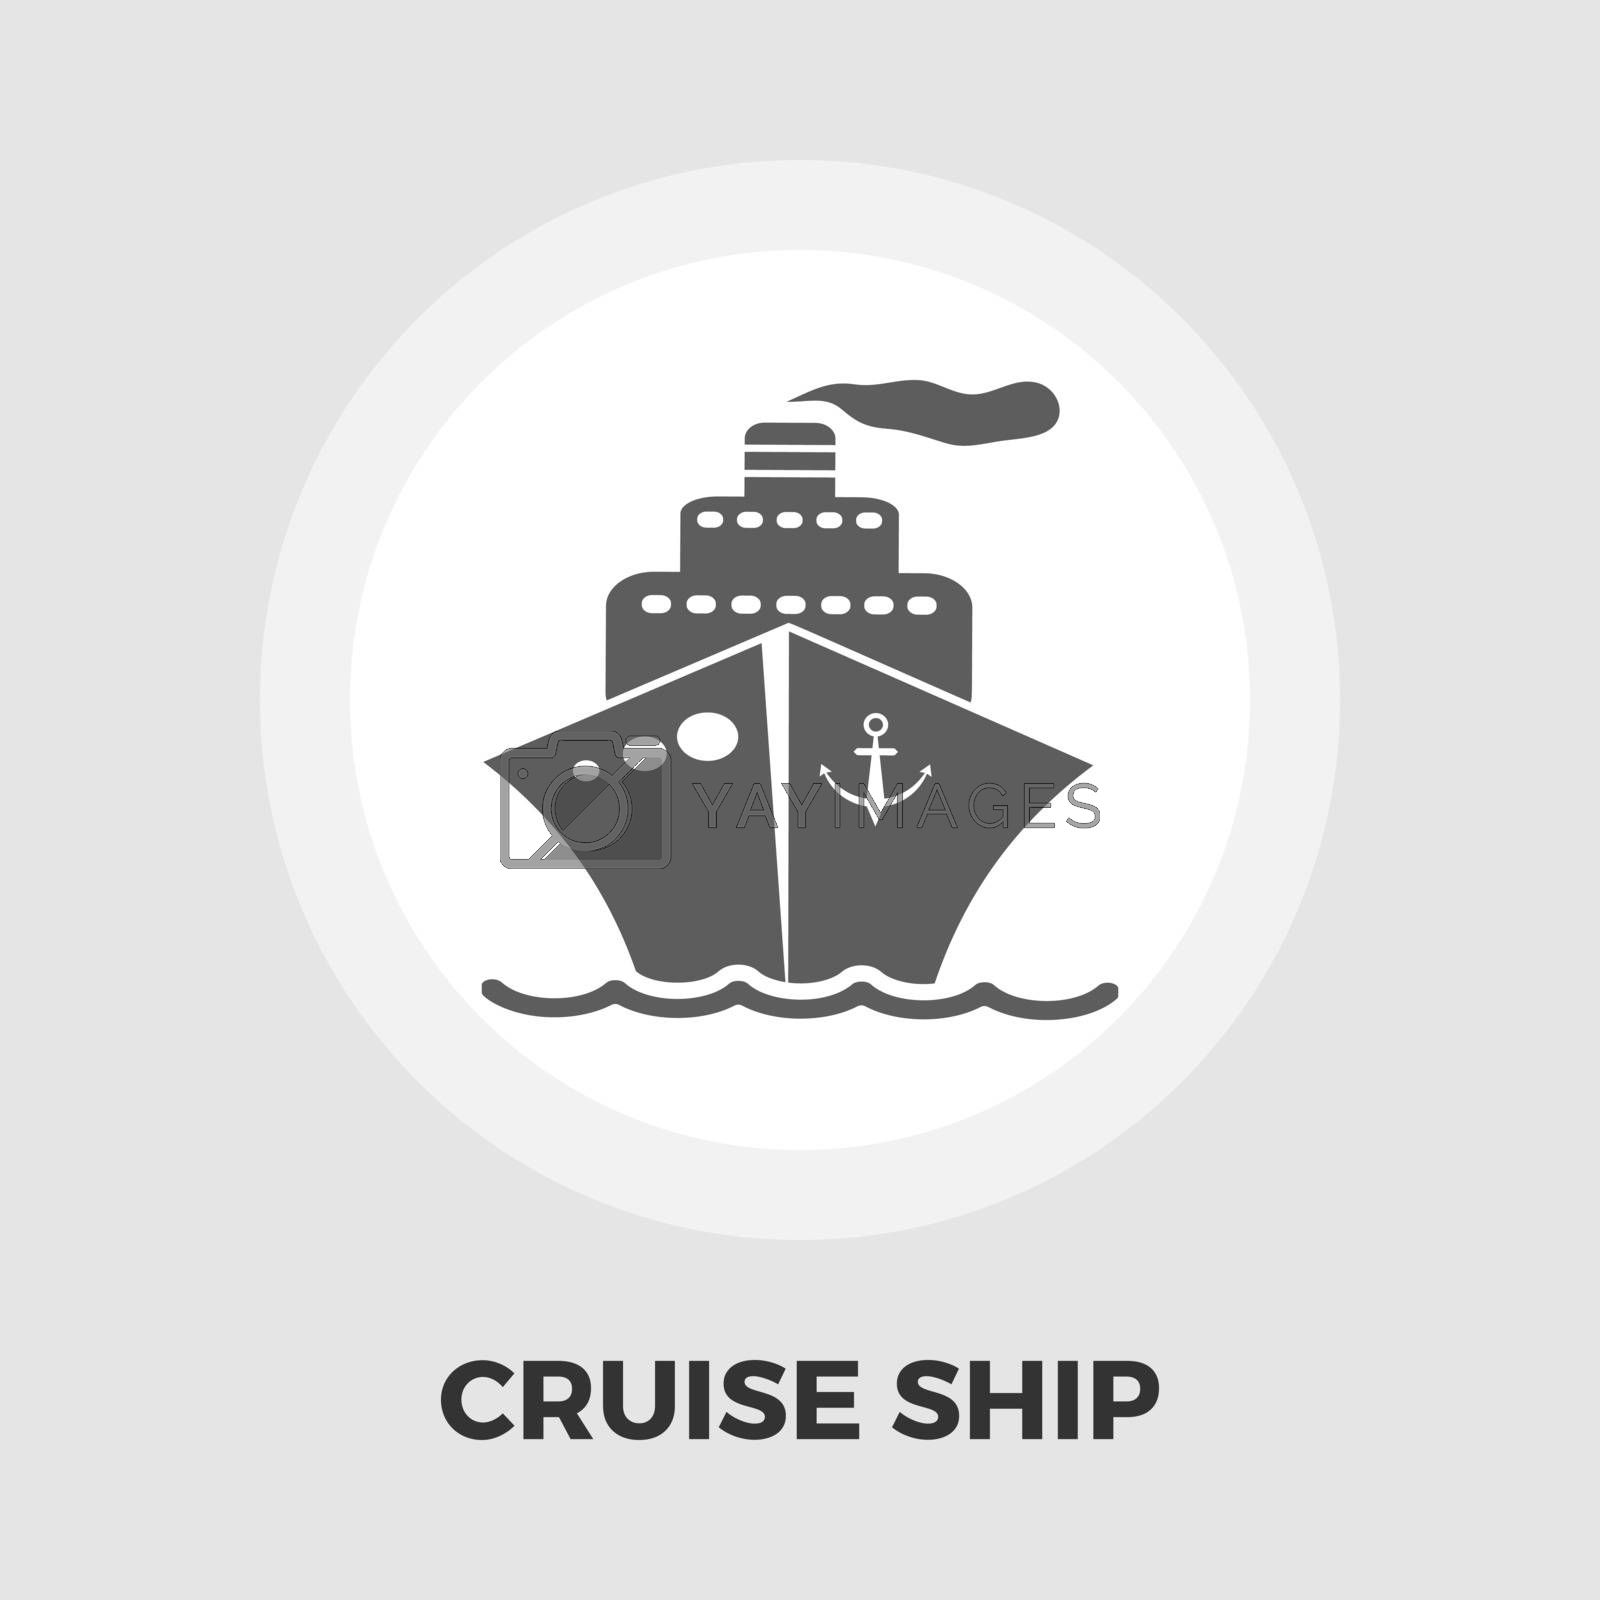 Cruise Ship Icon Vector. Flat icon isolated on the white background. Editable EPS file. Vector illustration.